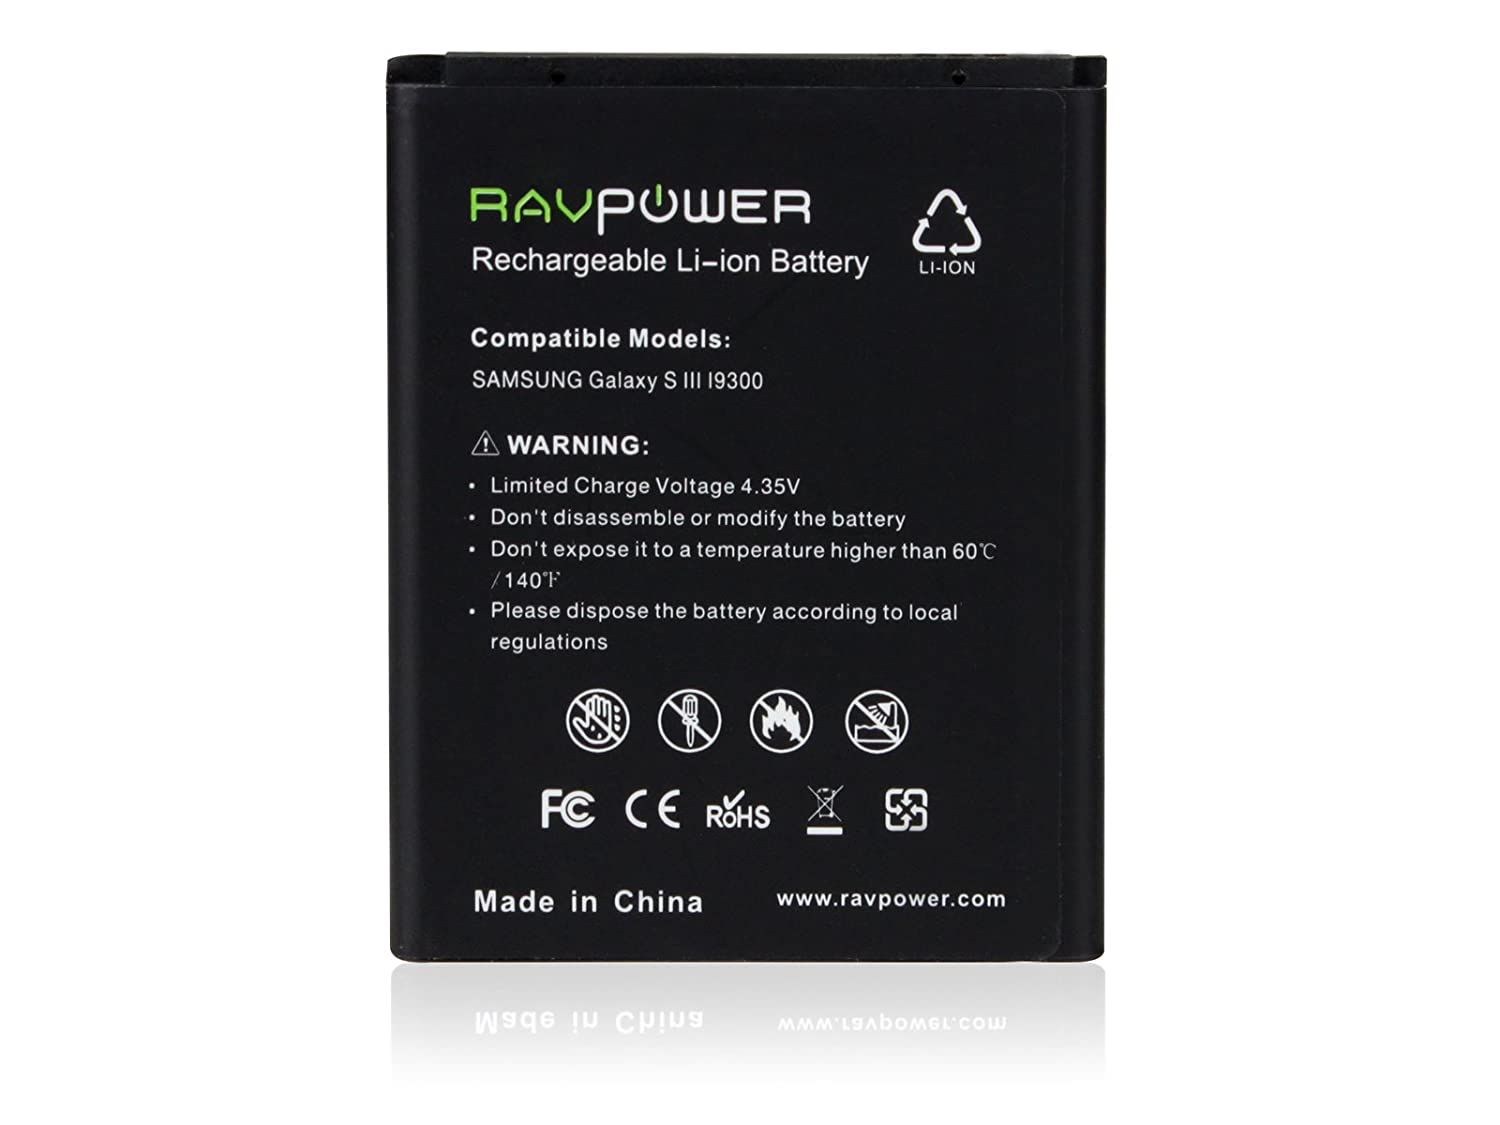 Samsung galaxy battery s3 verizon - Amazon Com Ravpower 2250mah Replacement Battery For Samsung Galaxy S3 Eb L1g6llu Gt I9300 Gt I9305 Lte T999 I747 I535 L710 R530 Nfc Capable Cell